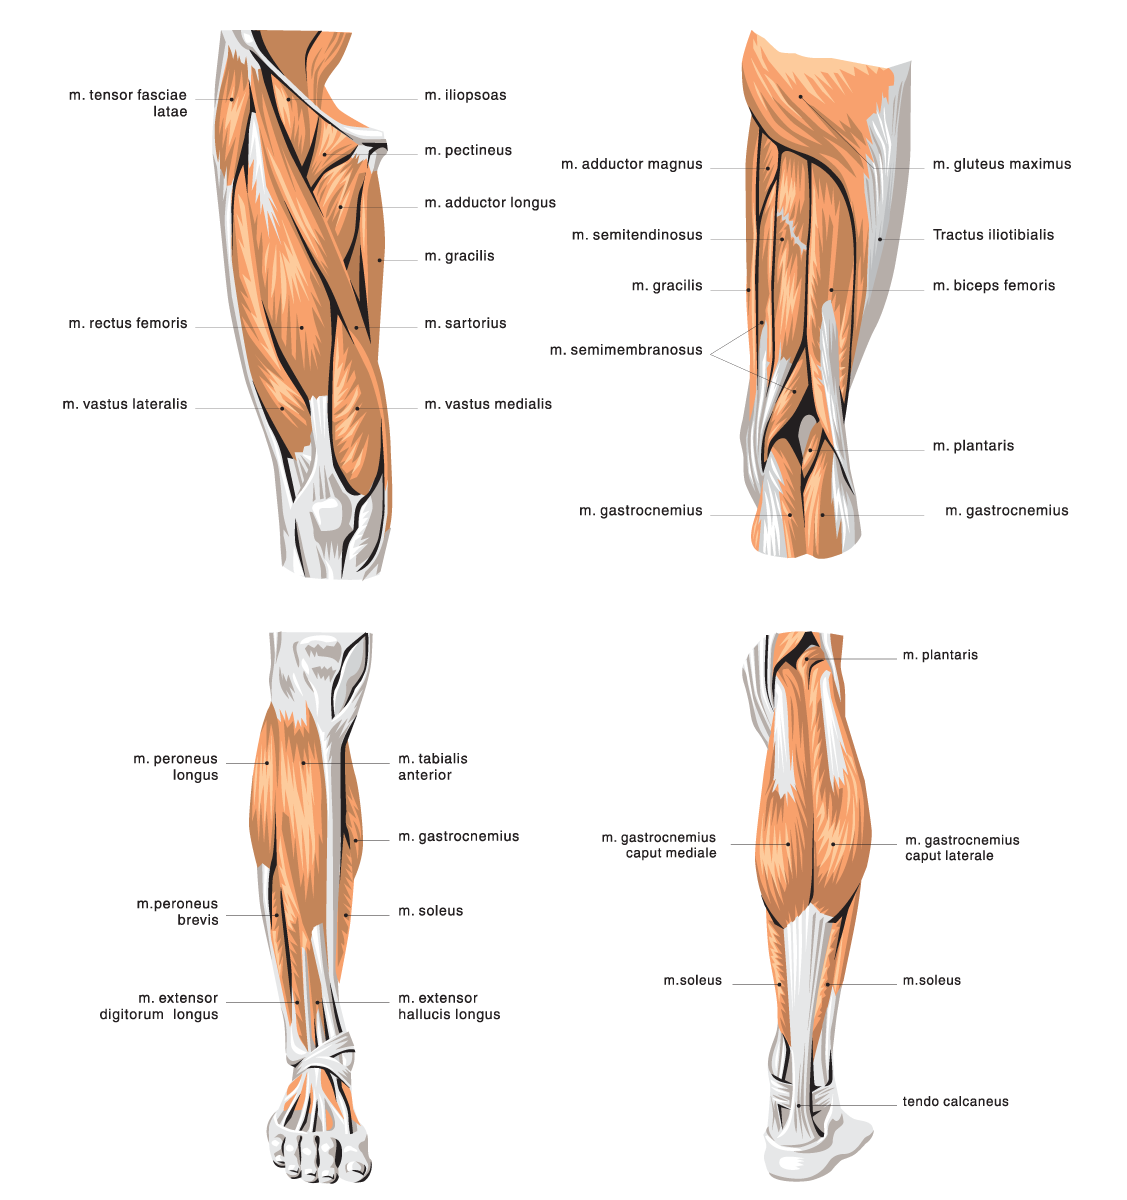 g5-51 Top 10 Strongest Muscles in The Body